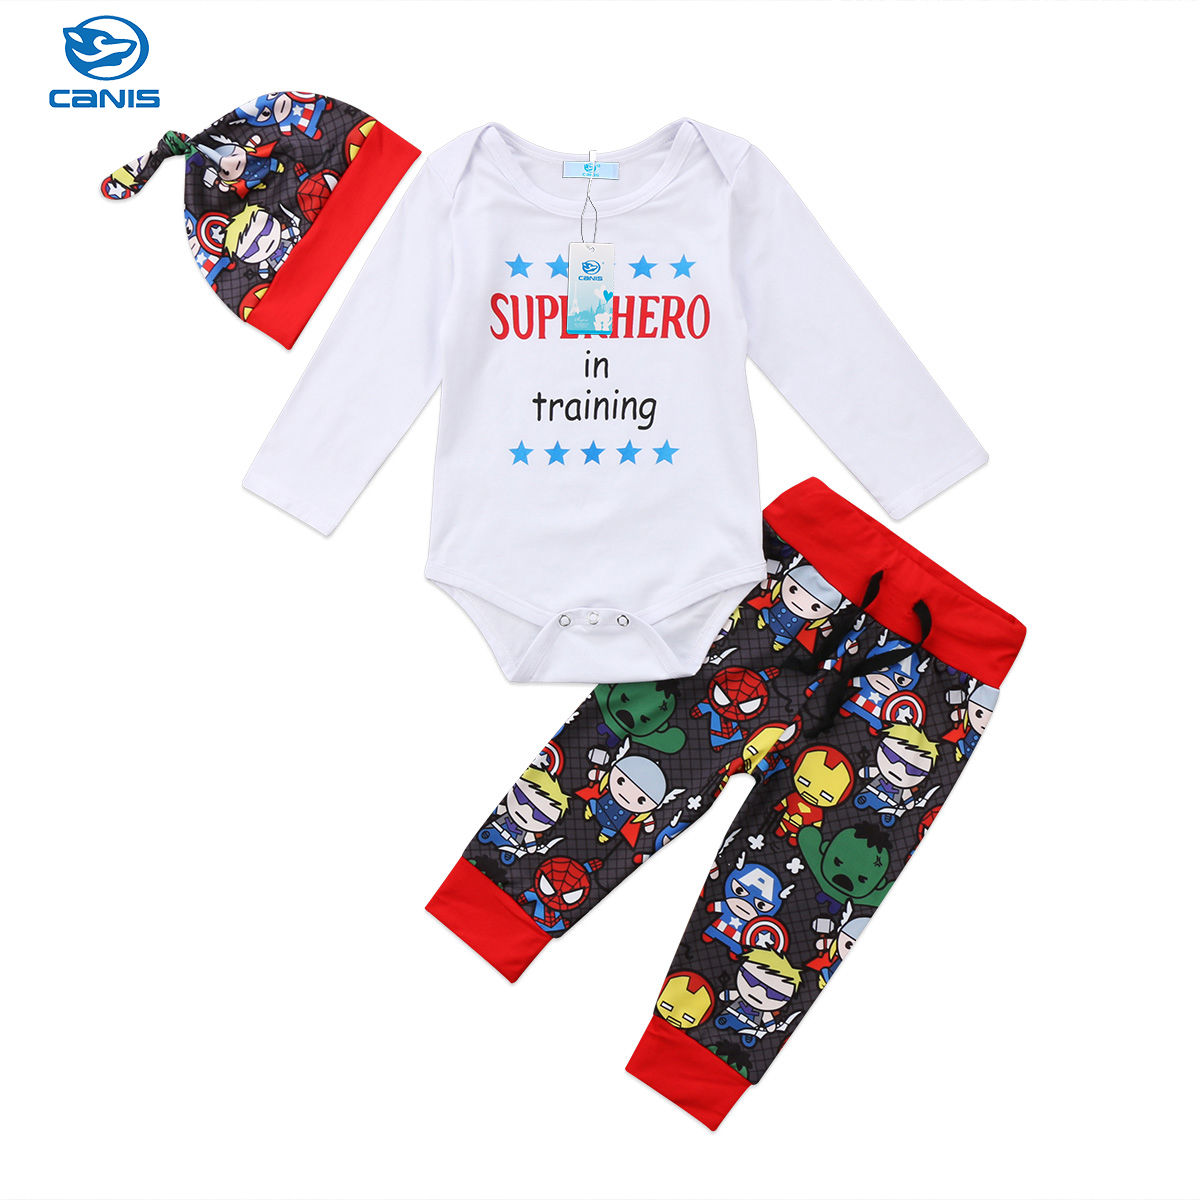 Canis Toddler Baby Boys Romper Bodysuit Pants Leggings Hat Outfits Clothes Set